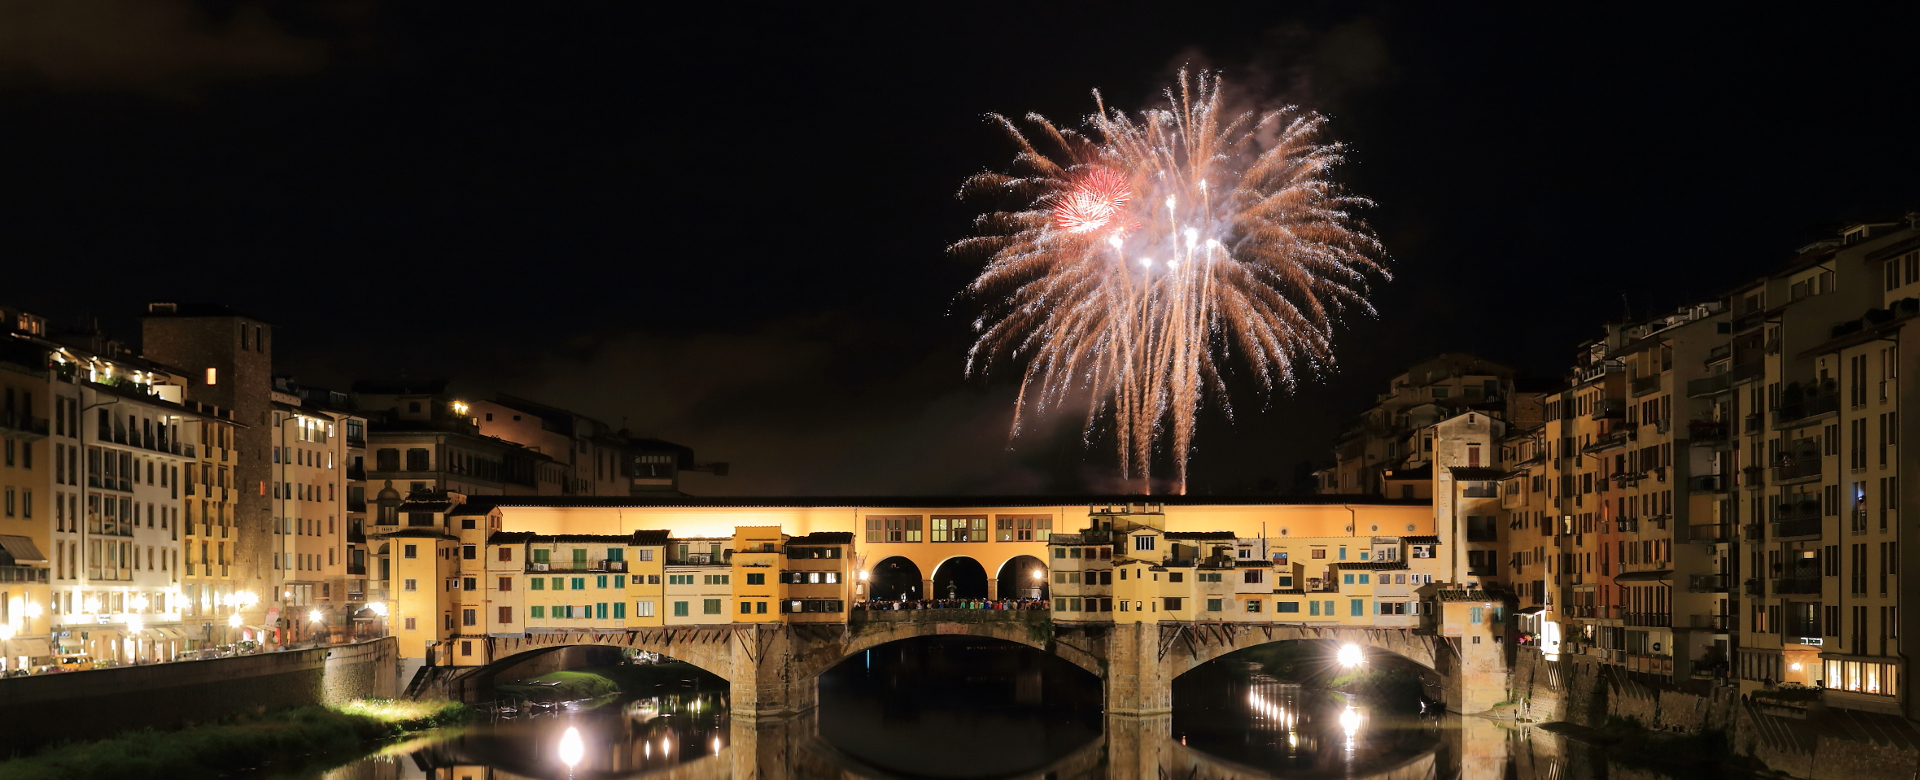 Feast of St. John in Florence 2020 in honour of the Patron Saint